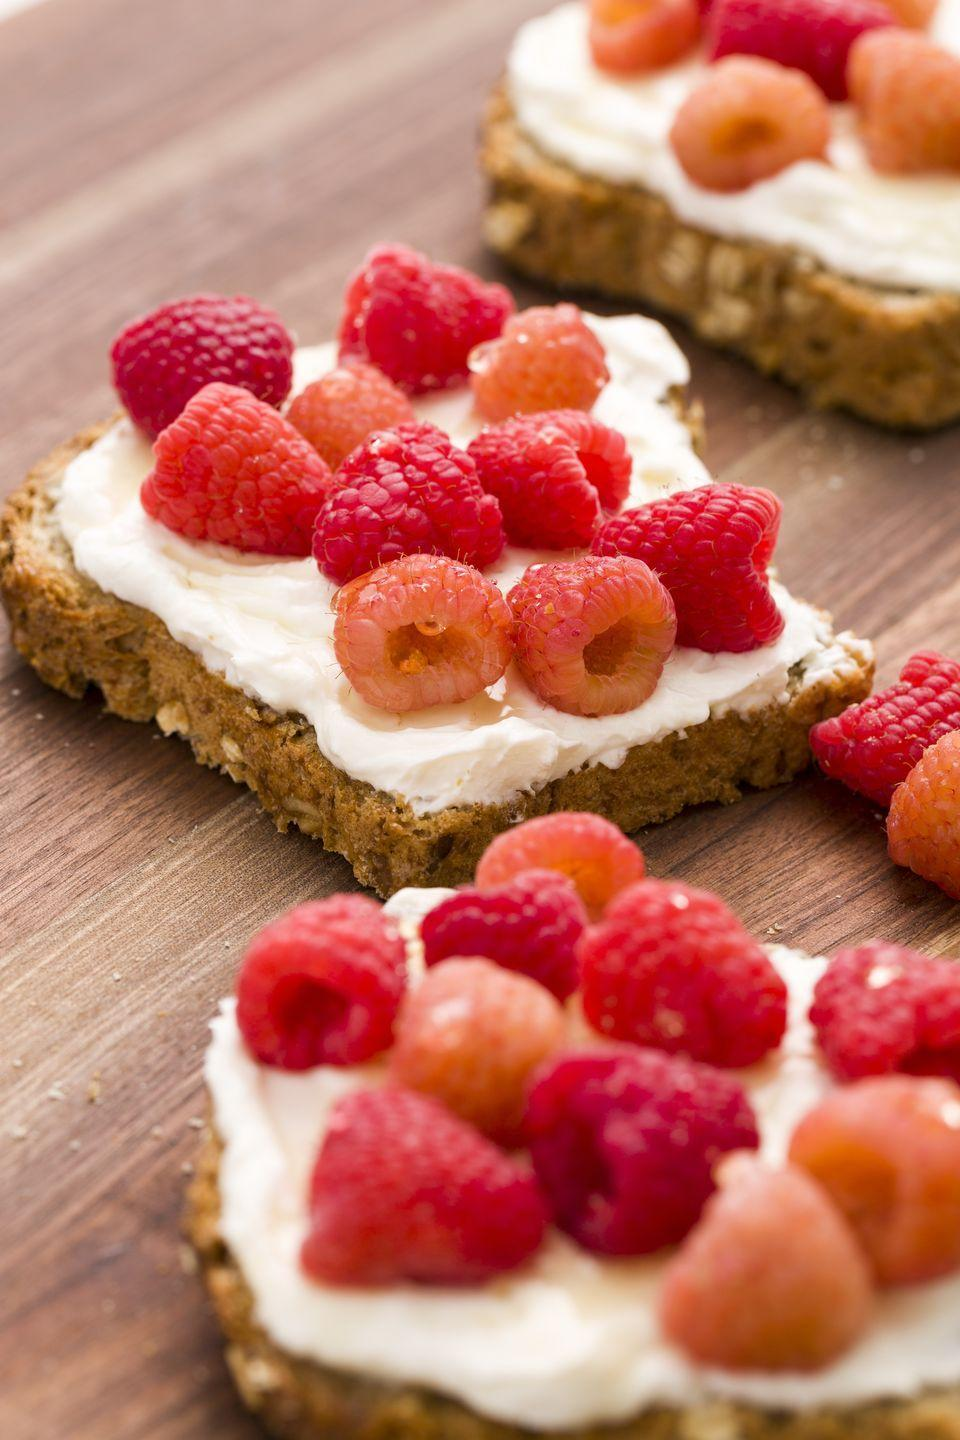 """<p>Sweetened ricotta is the perfect spread for toast. </p><p>Get the recipe from <a href=""""https://www.delish.com/cooking/recipe-ideas/recipes/a45367/ricotta-honey-toast-with-berries-recipe/"""" rel=""""nofollow noopener"""" target=""""_blank"""" data-ylk=""""slk:Delish"""" class=""""link rapid-noclick-resp"""">Delish</a>. </p>"""